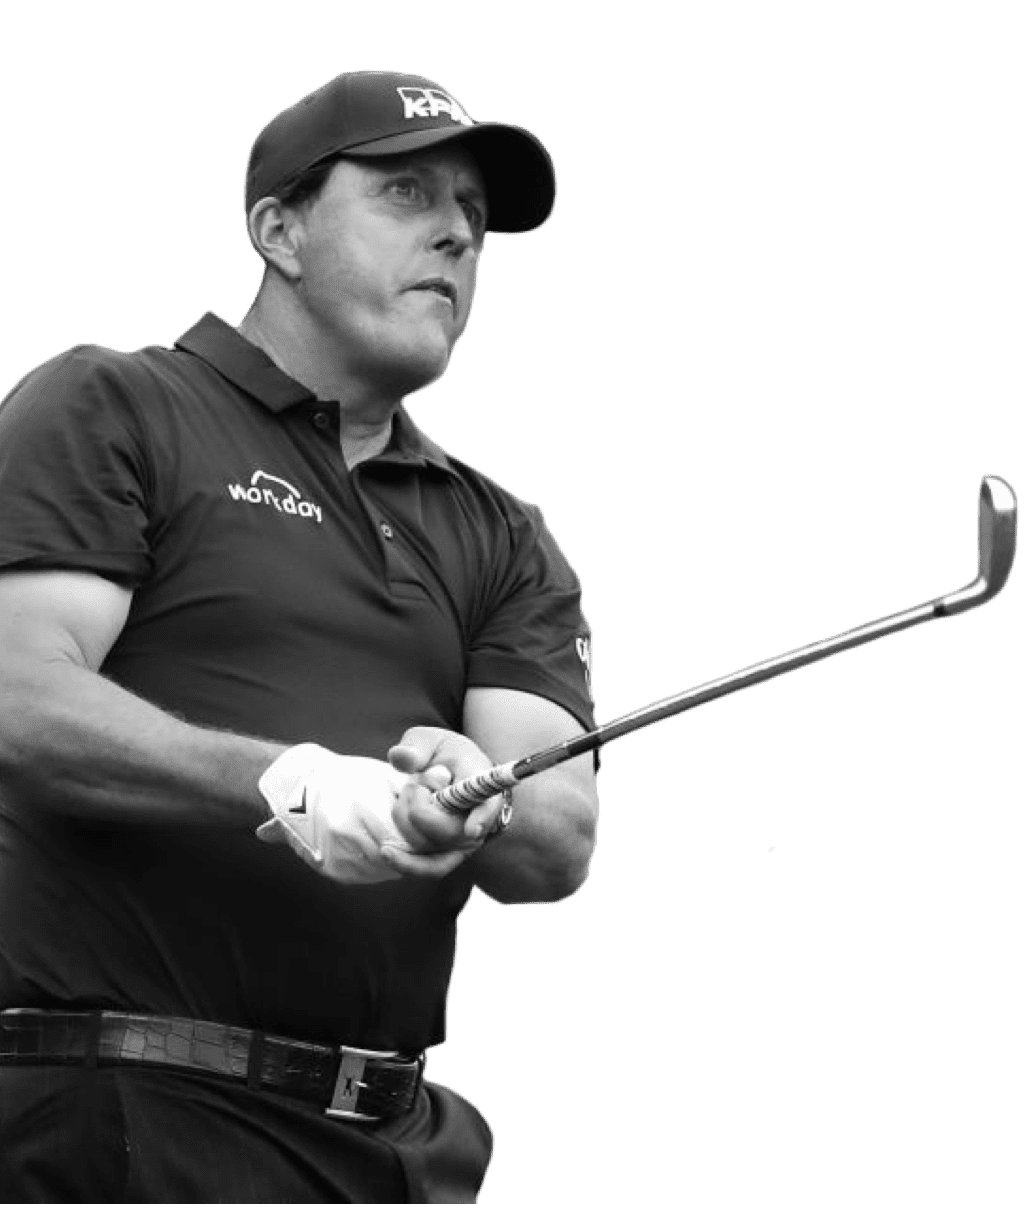 Phil Mickelson eyeing his golf shot